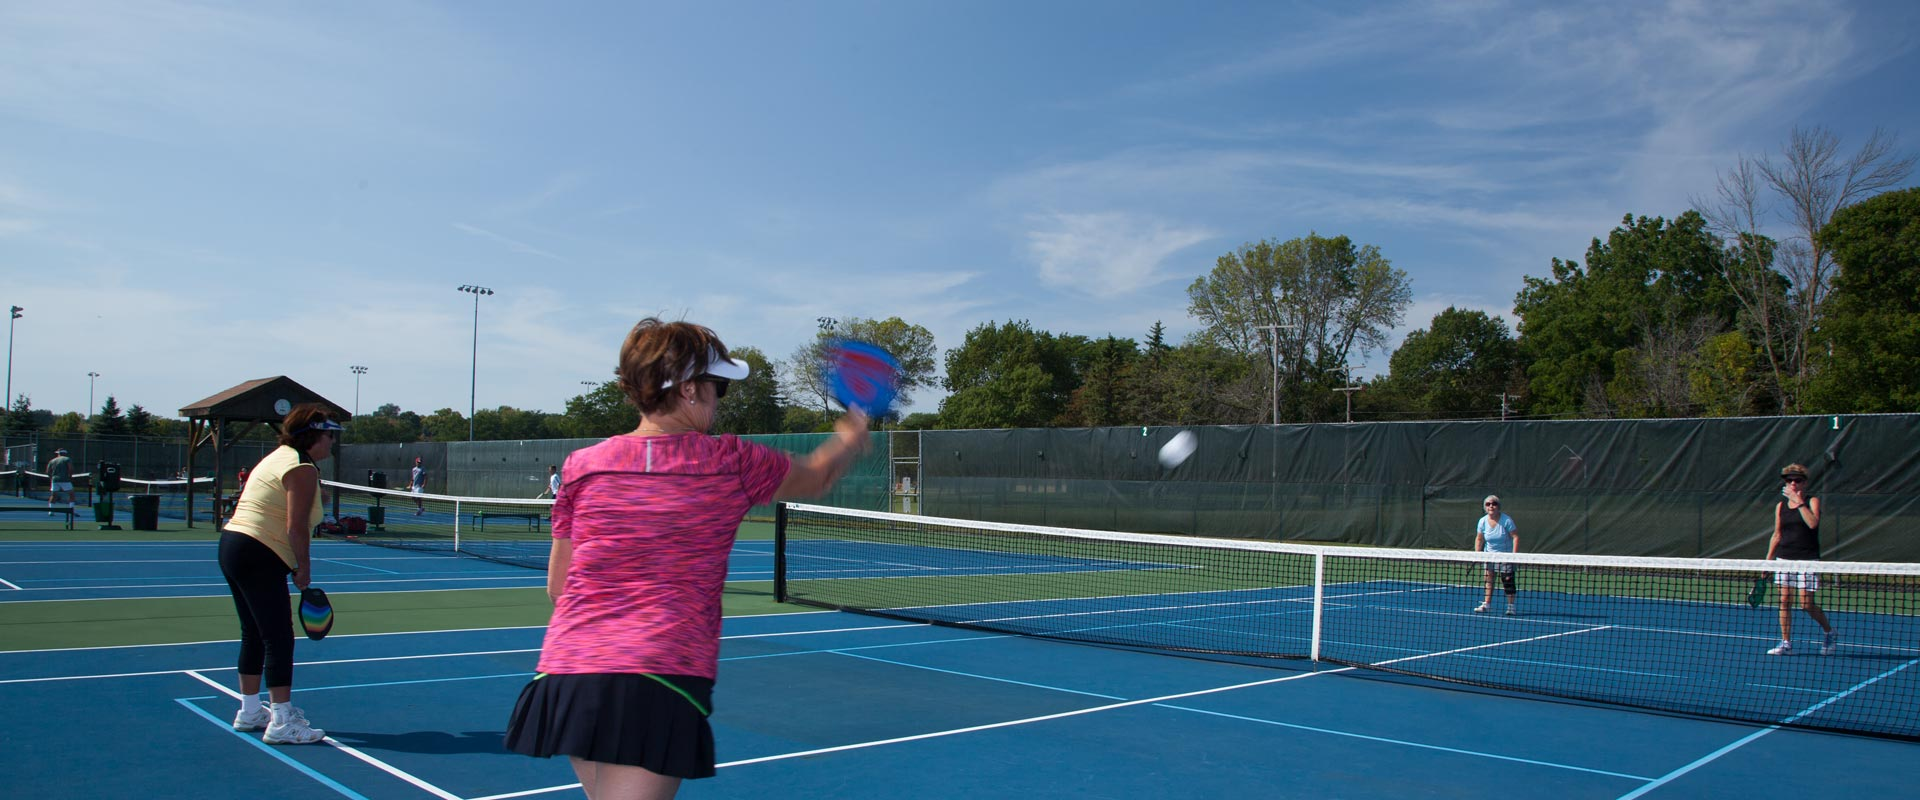 Join Us For Pickleball